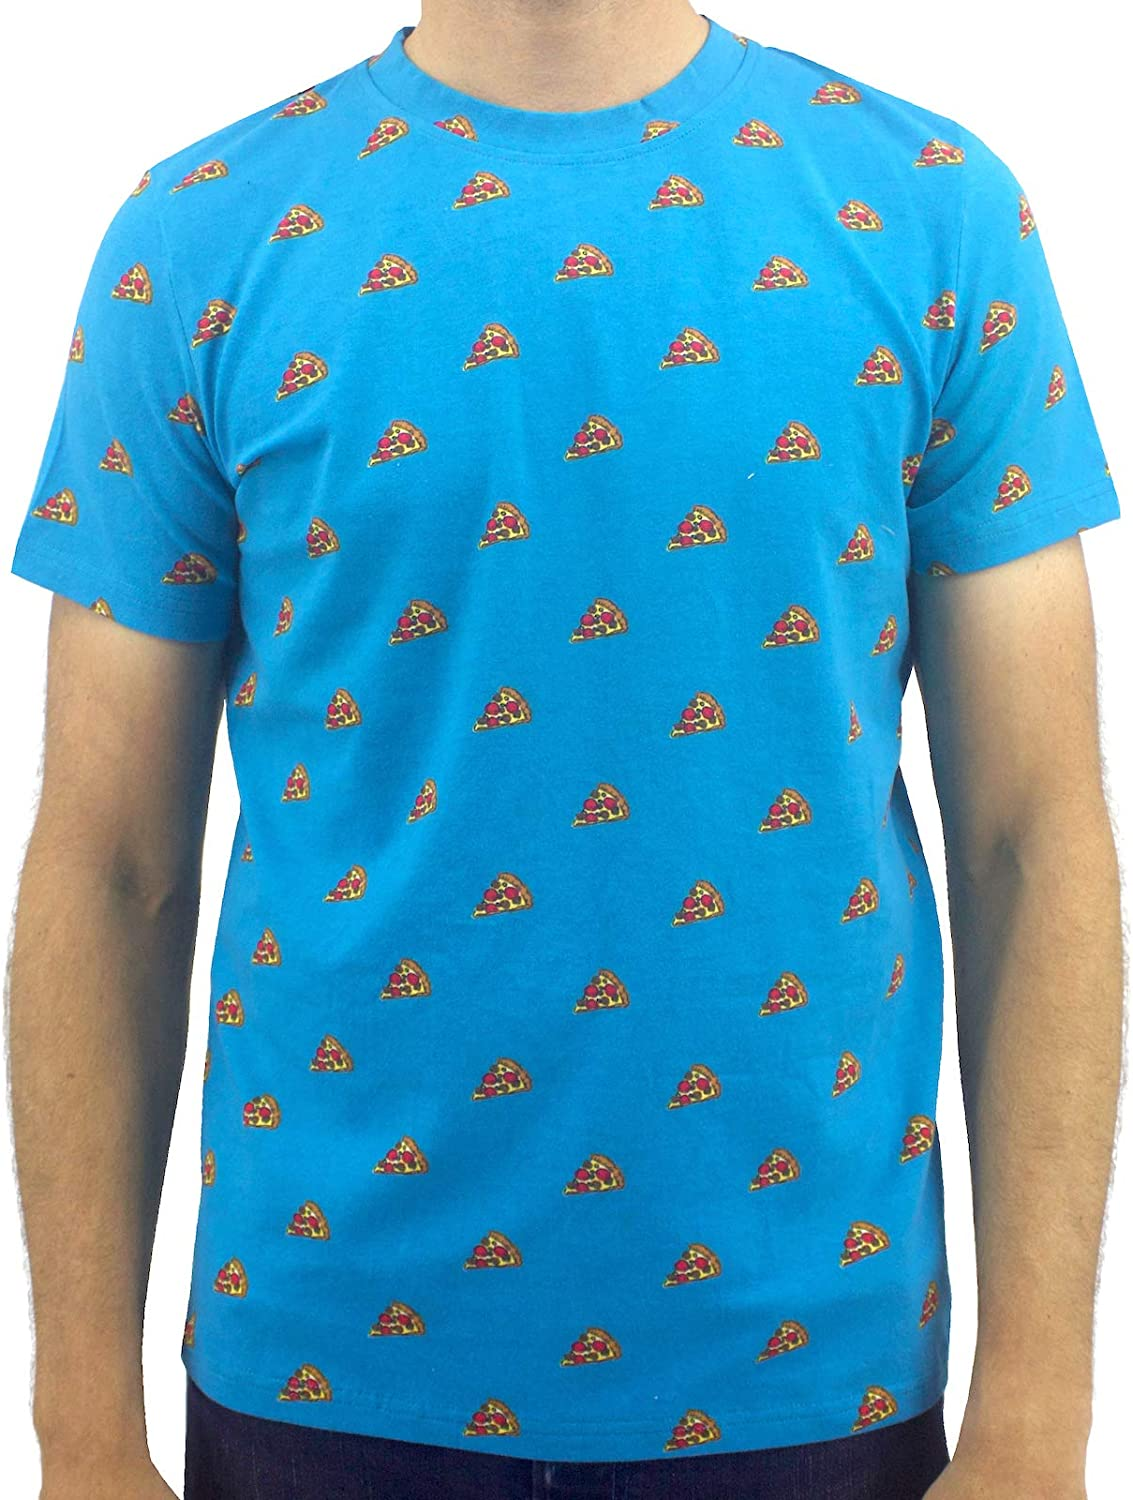 ROCK ATOLL Men's Bright Blue Food Pizza All Over Print Cotton Crew-Neck T-Shirt